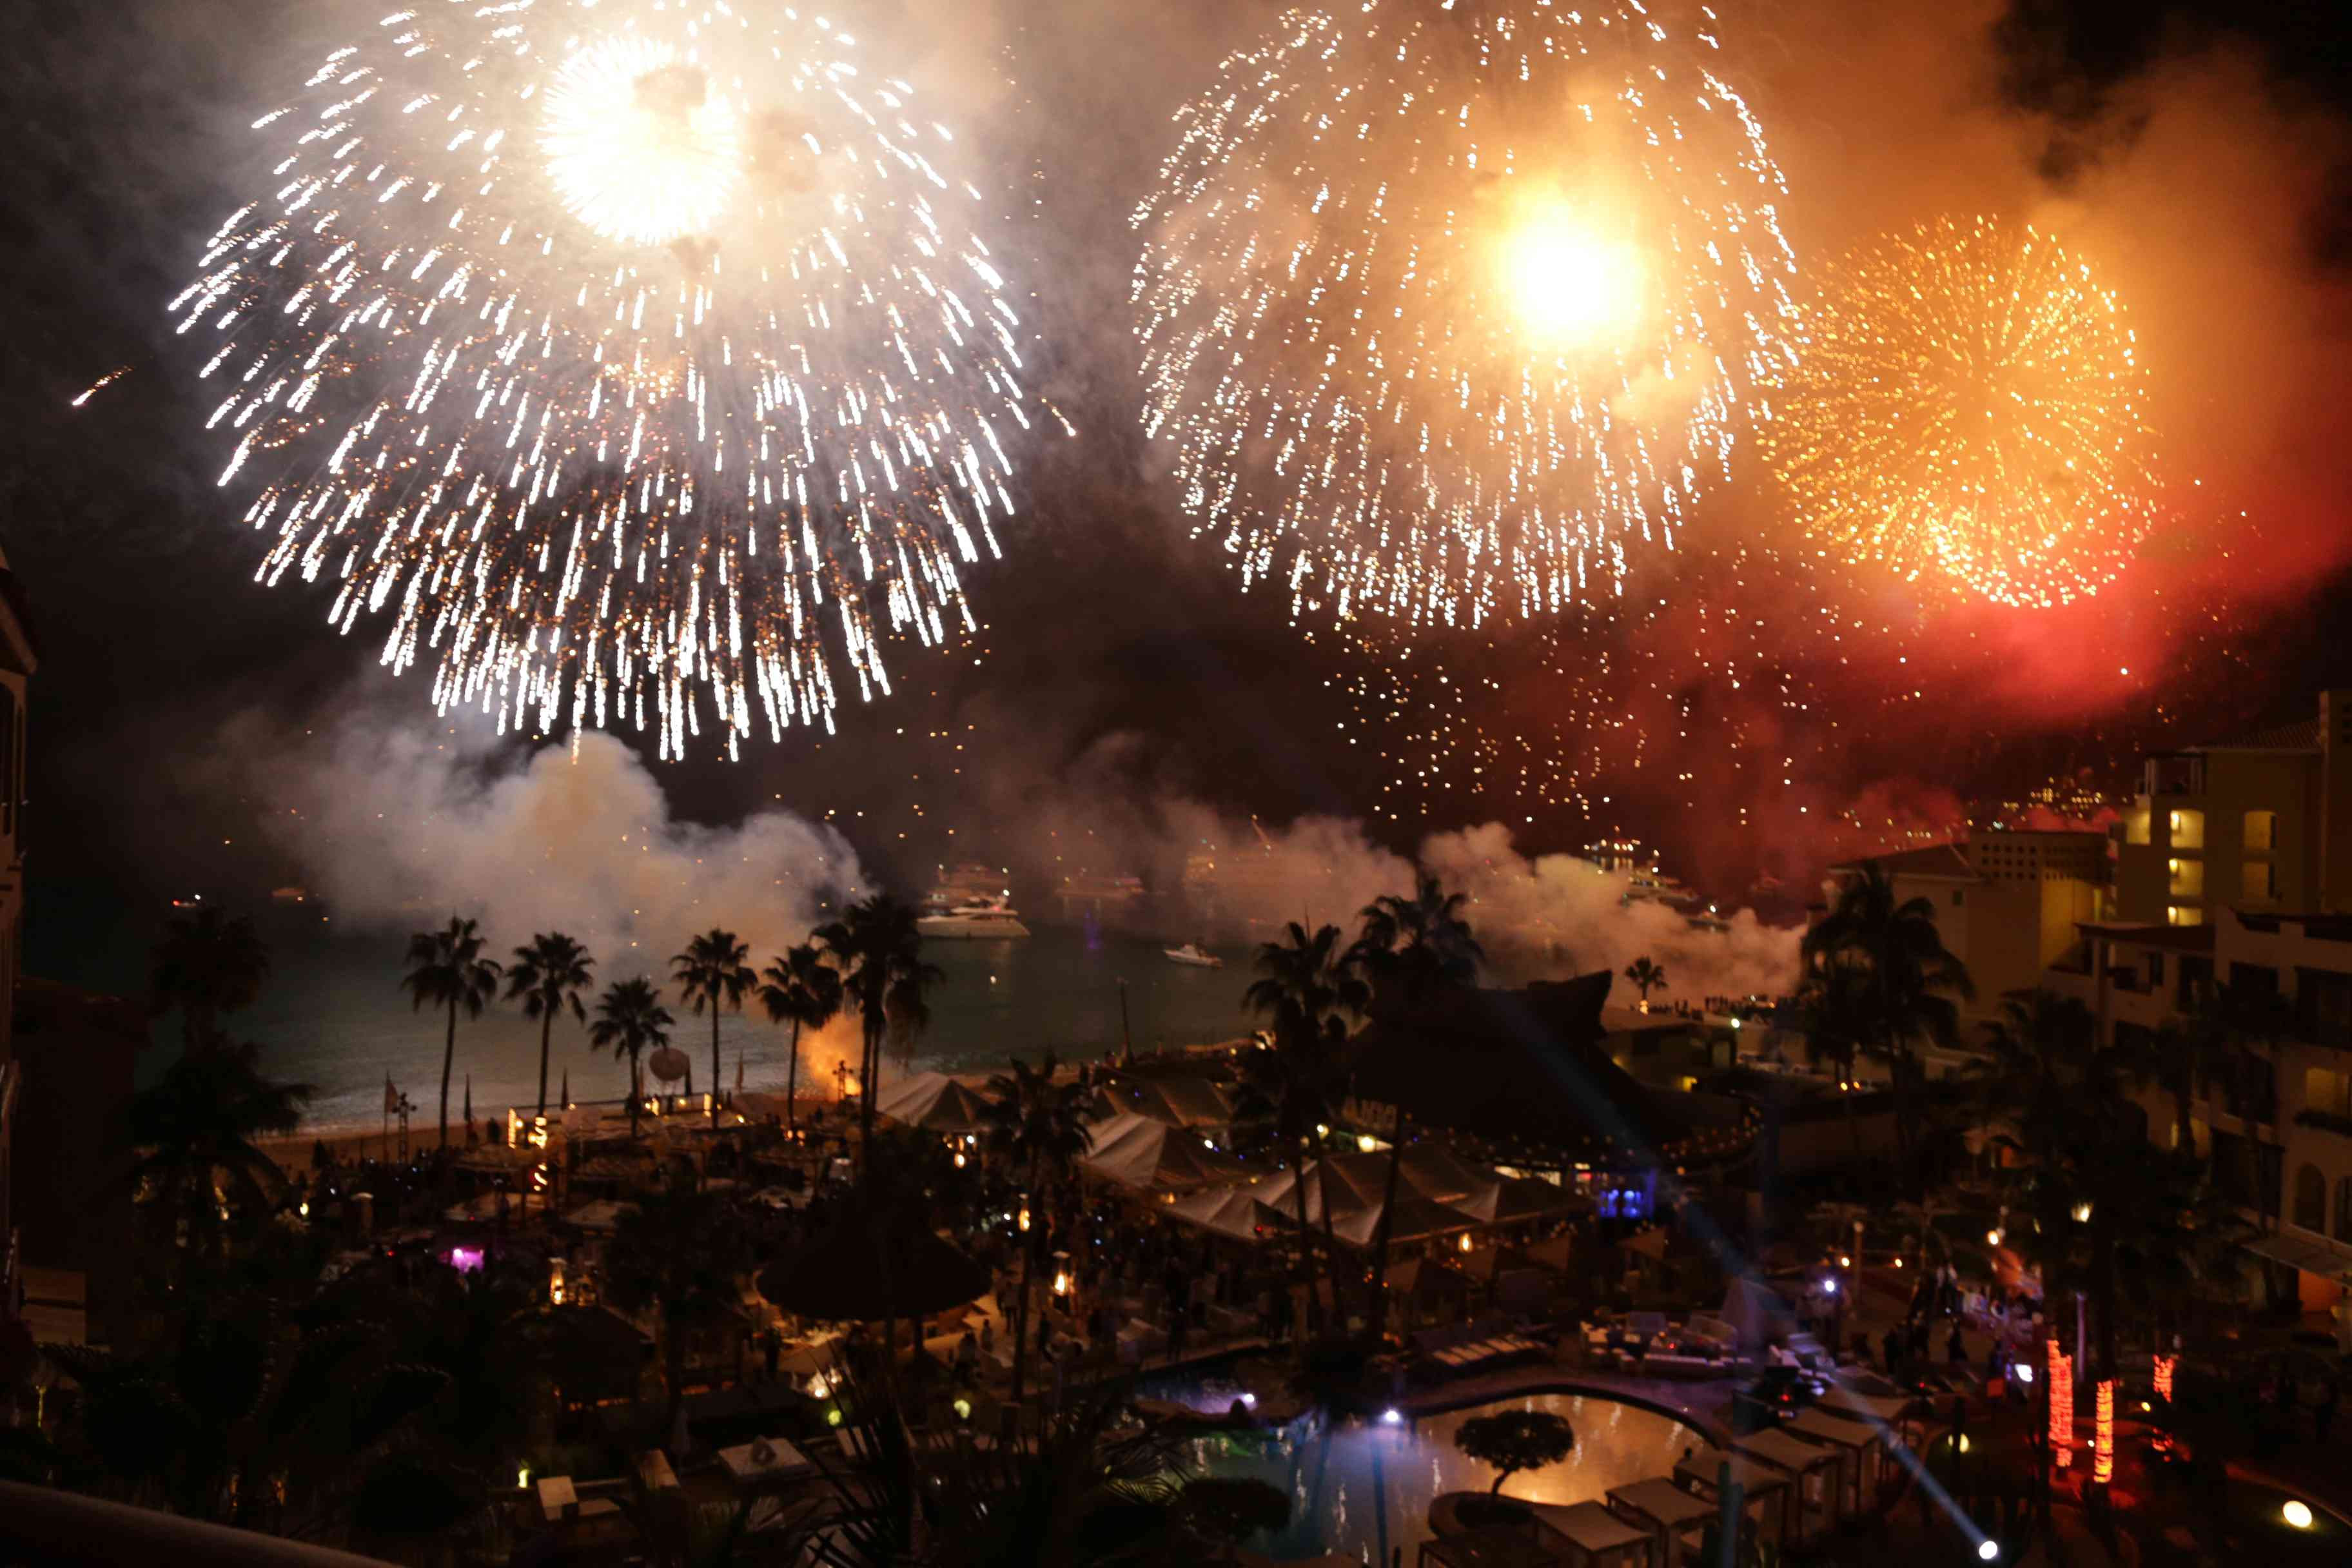 Fireworks display for New Year in Cabo San Lucas, Mexico